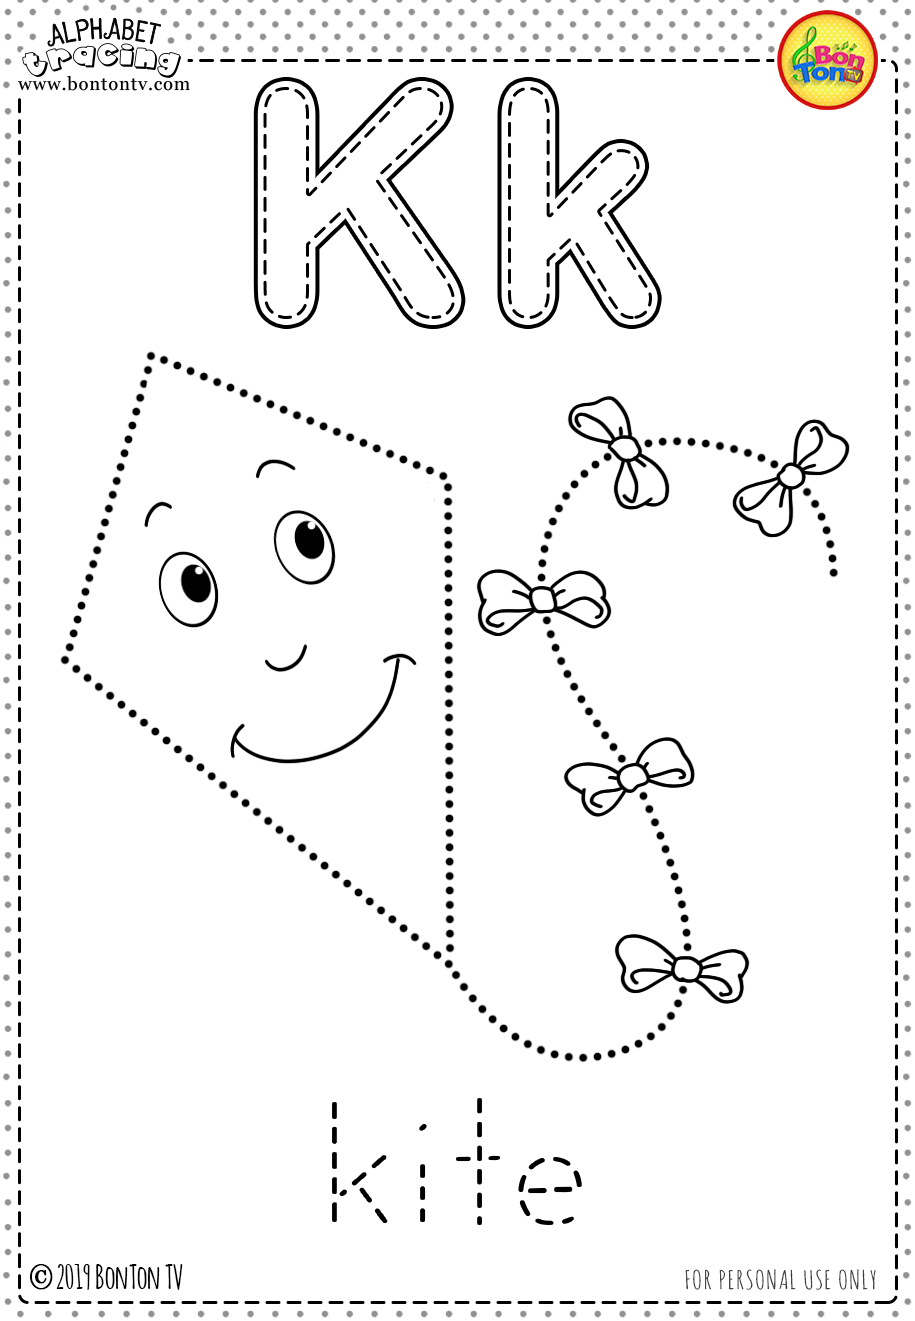 Free Preschool Printables - Alphabet Tracing And Coloring pertaining to Alphabet Tracing And Coloring Pages